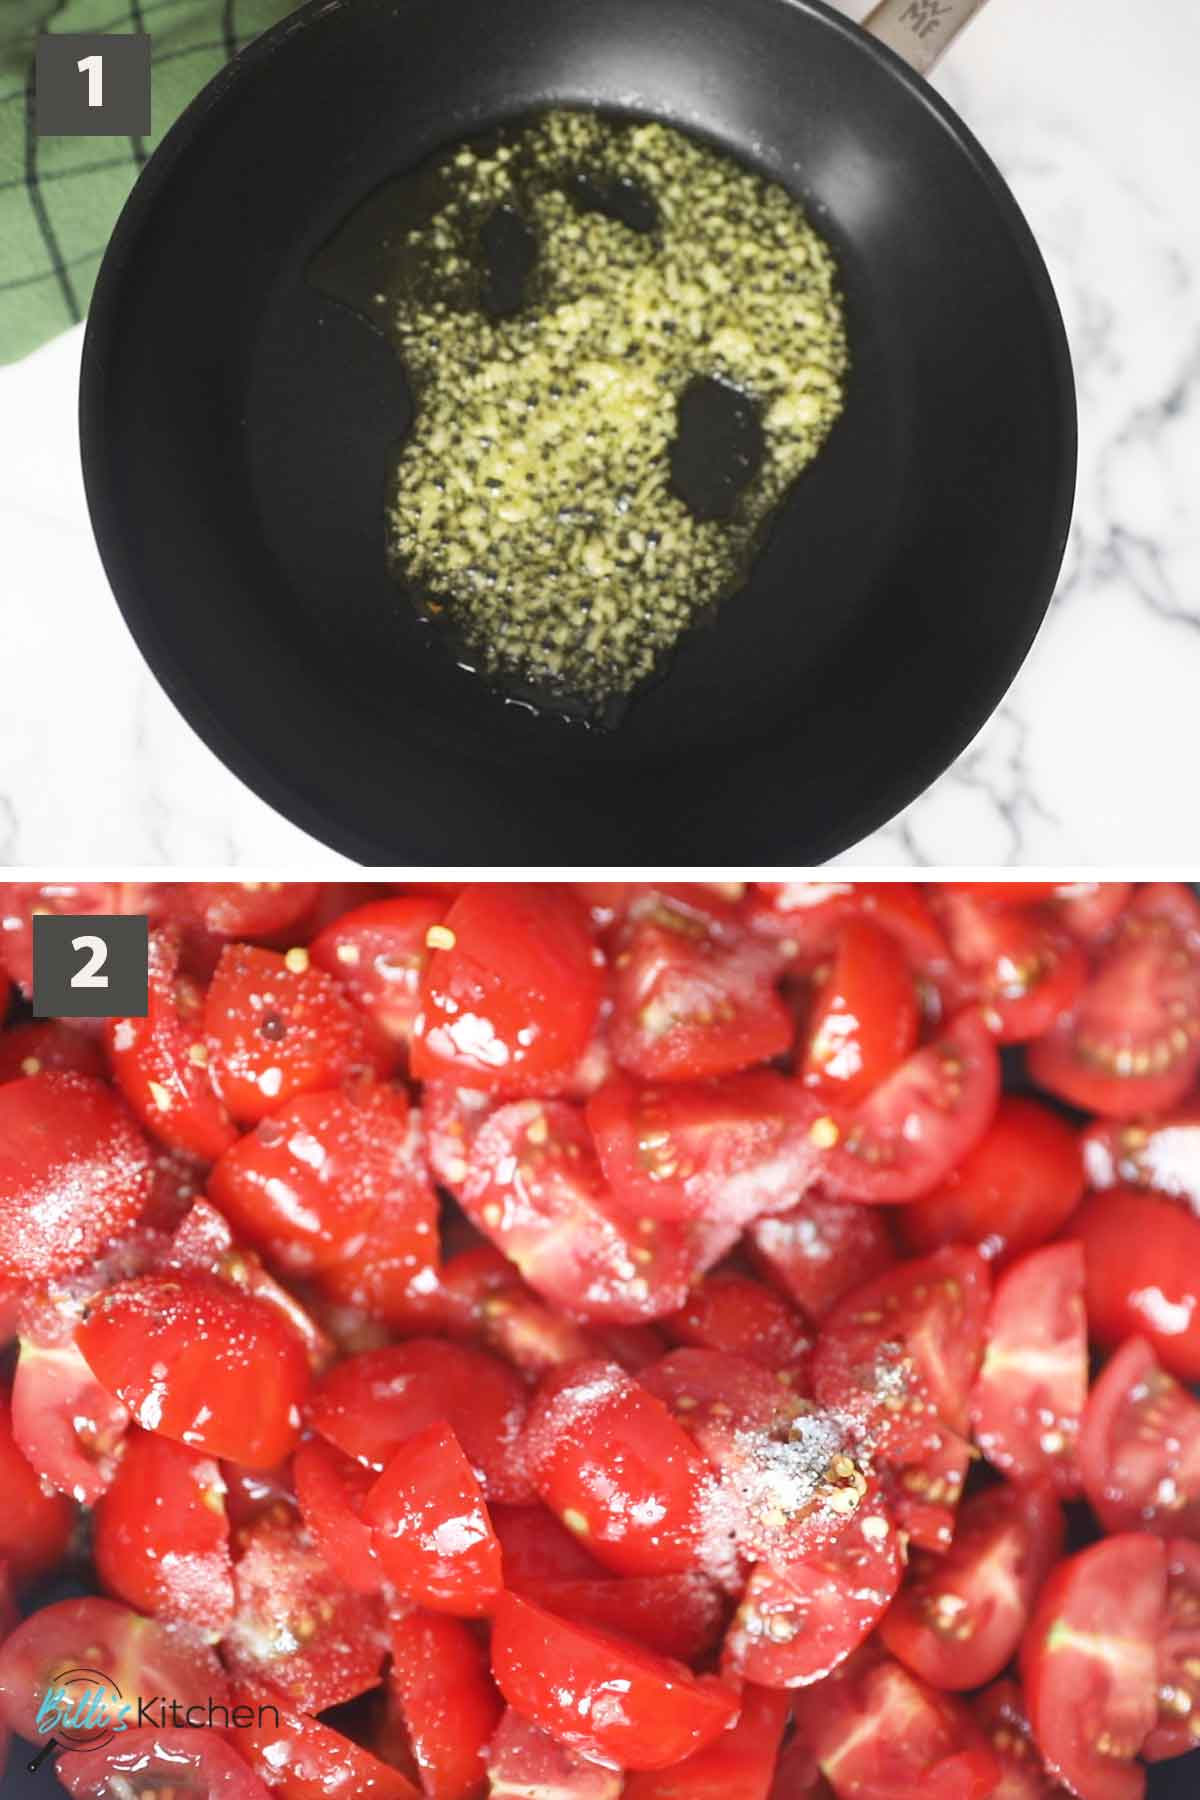 First part of a collage of images showing the step by step process on how to make creamy mascarpone pasta.